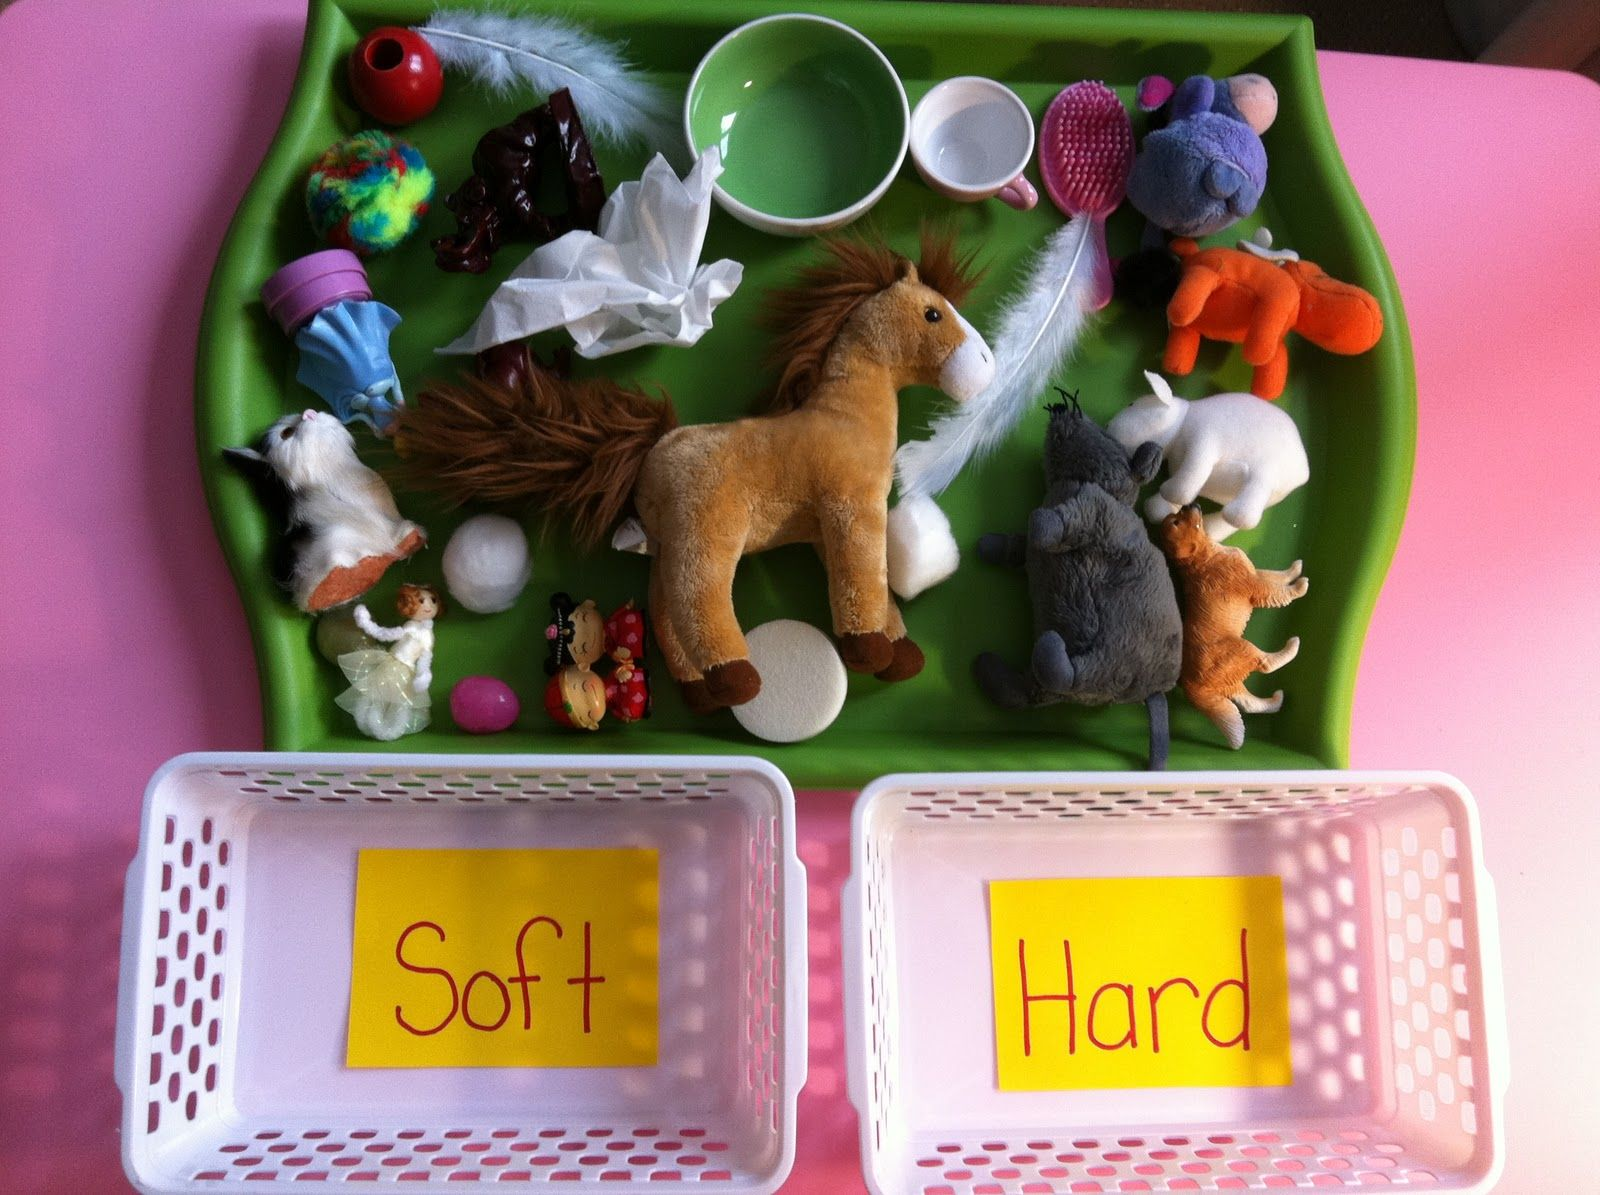 Sorting Objects By Attributes Hard Vs Soft Children Can